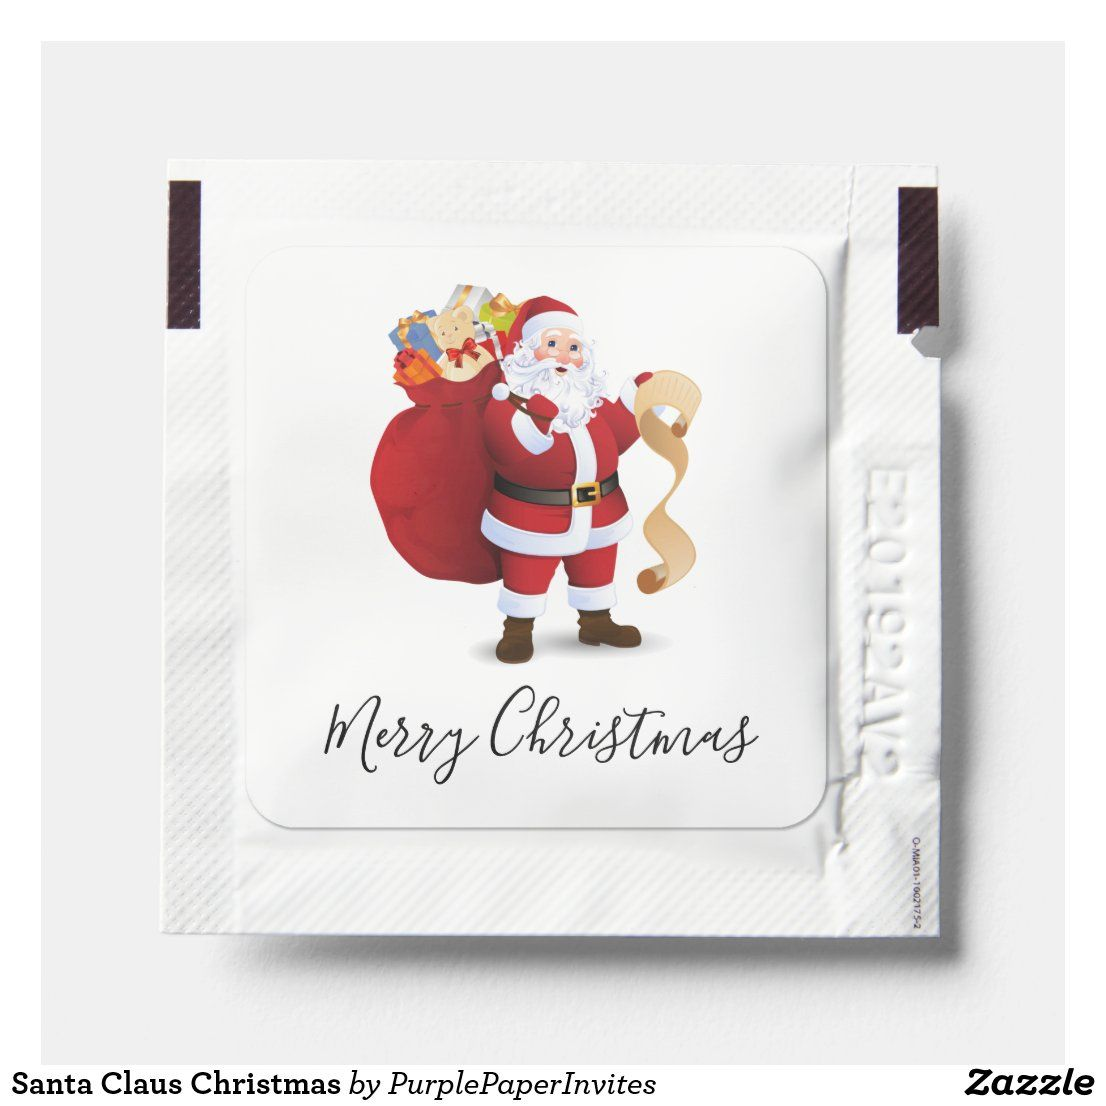 Santa Claus Christmas Hand Sanitizer Packet Zazzle Com In 2020 Hand Sanitizer Christmas Giveaways Custom Christmas